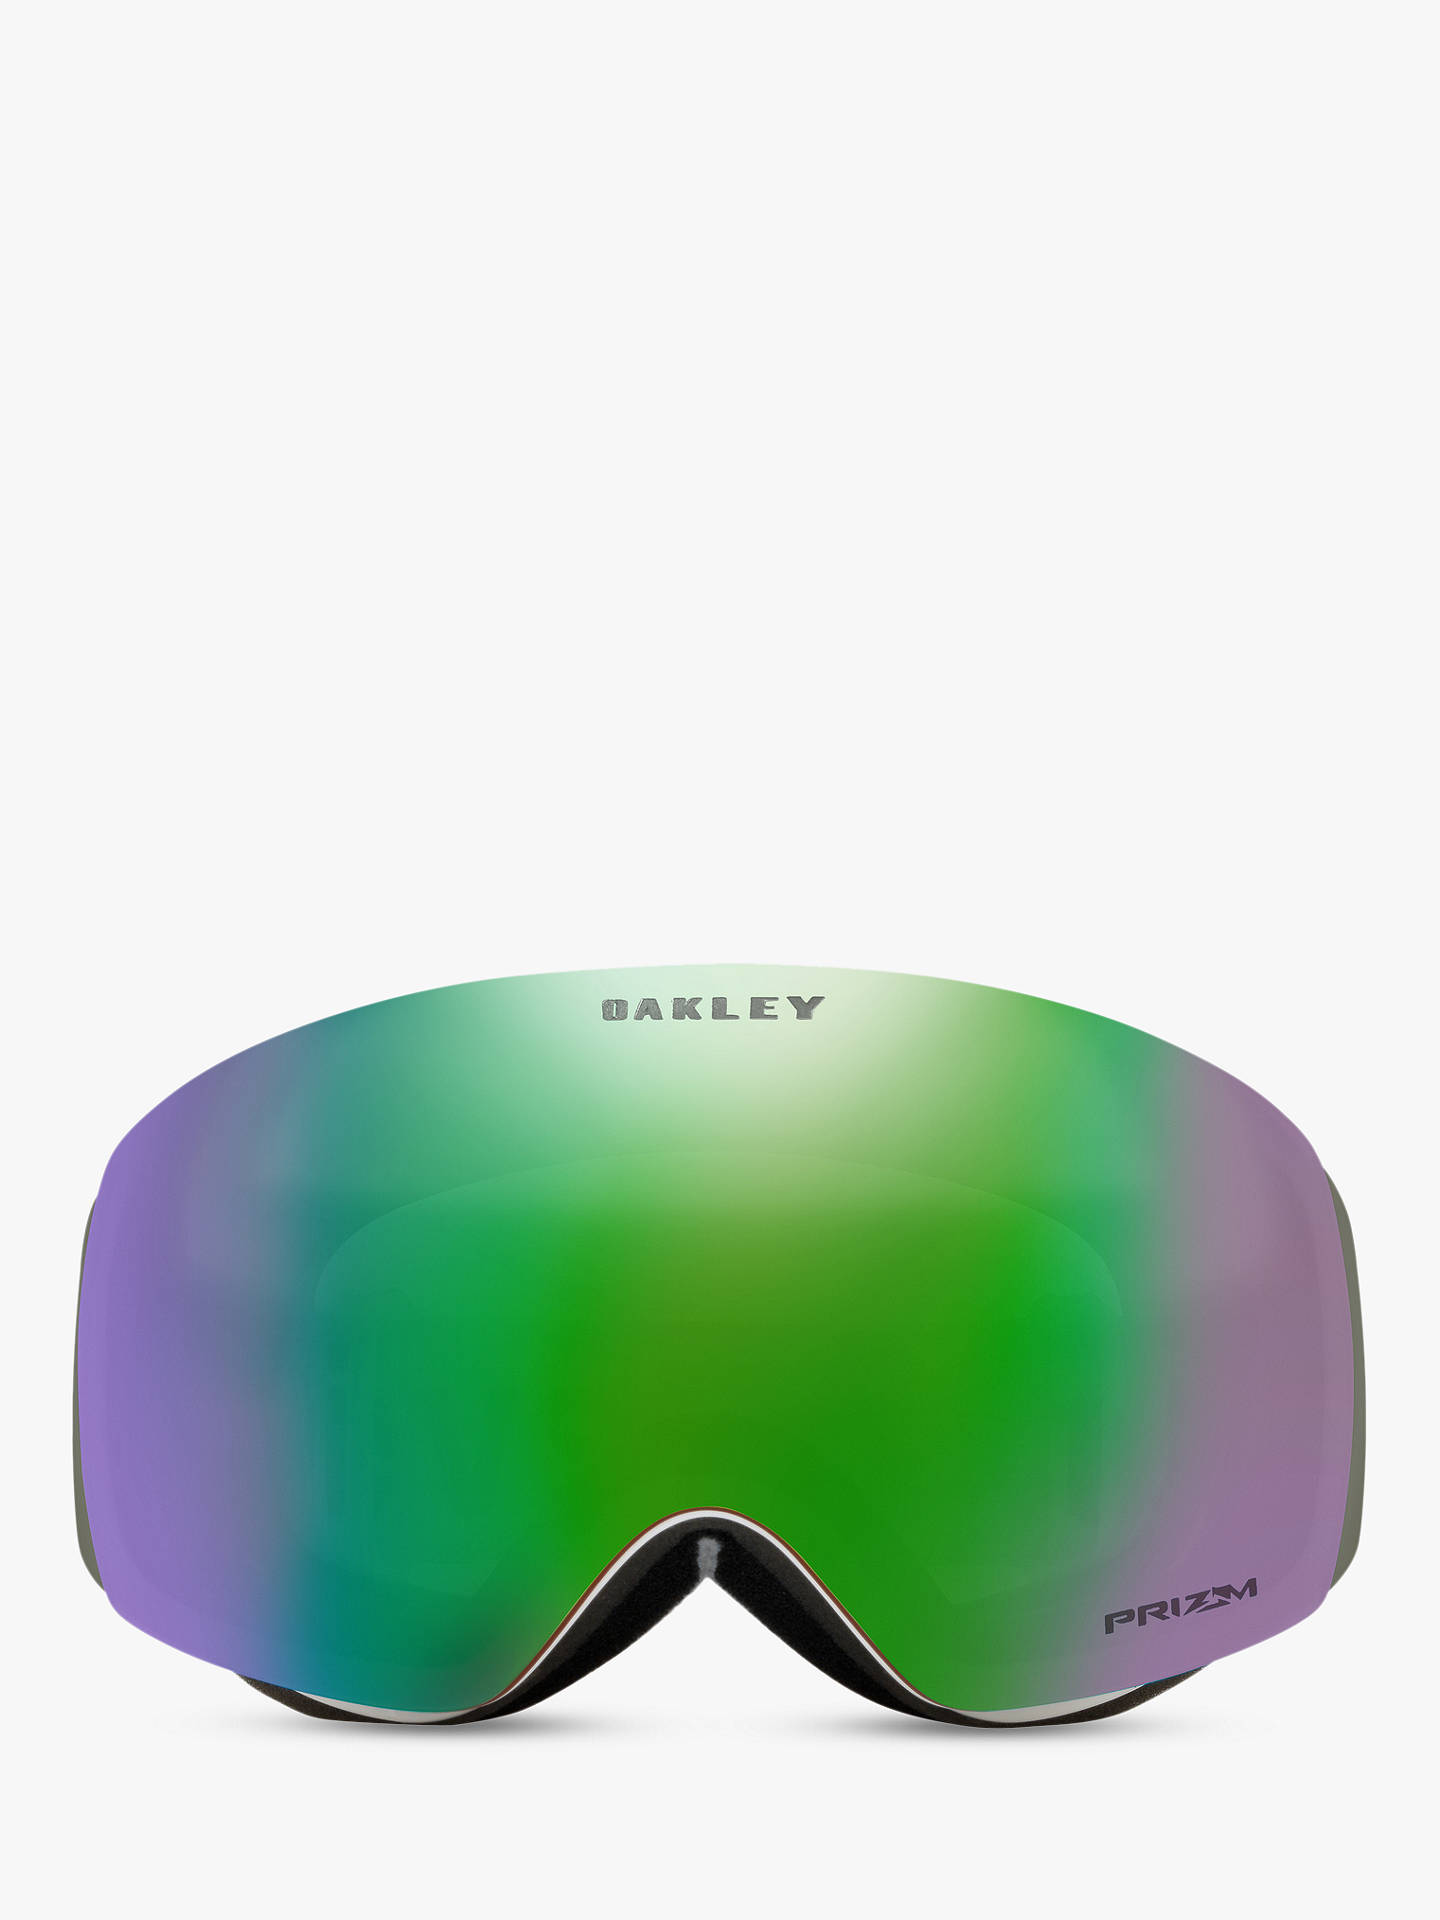 2cd4736210 ... Buy Oakley OO7064 Men s Flight Deck XM Lindsey Vonn Prizm Ski Goggles